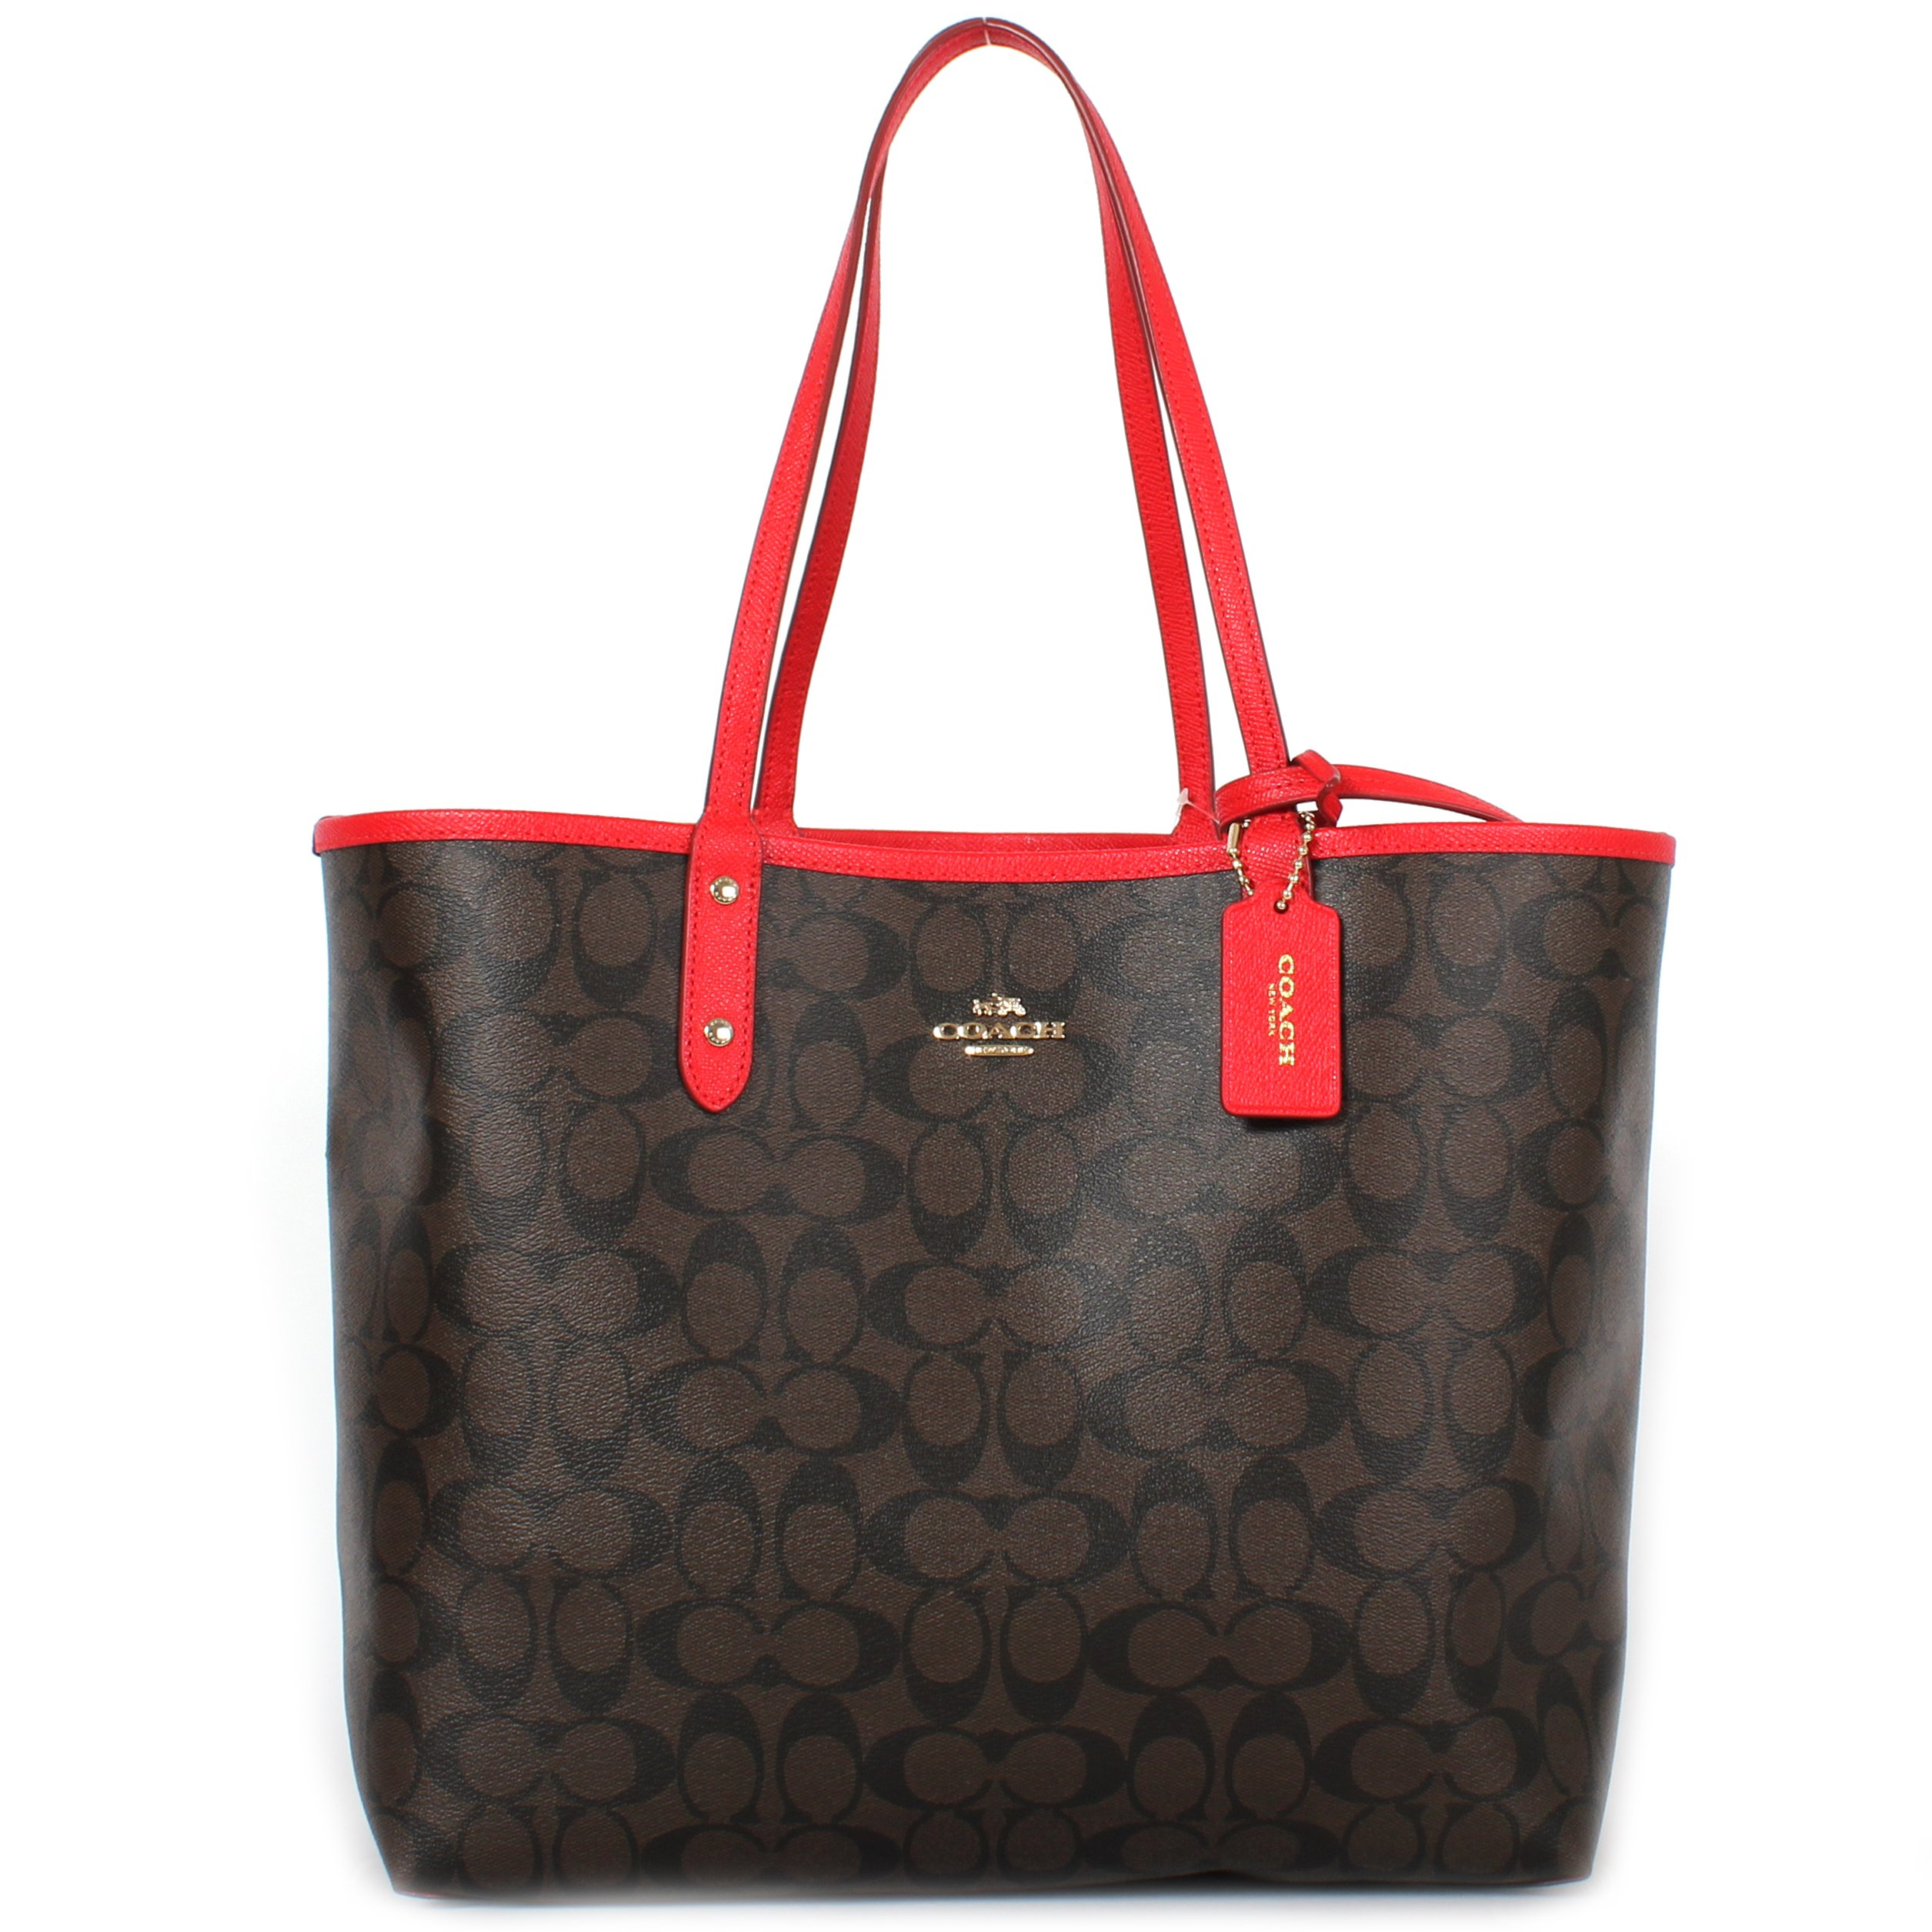 Coach Signature Reversible PVC City Large Tote Bag Handbag F36658 Brown/Bright Red by Coach